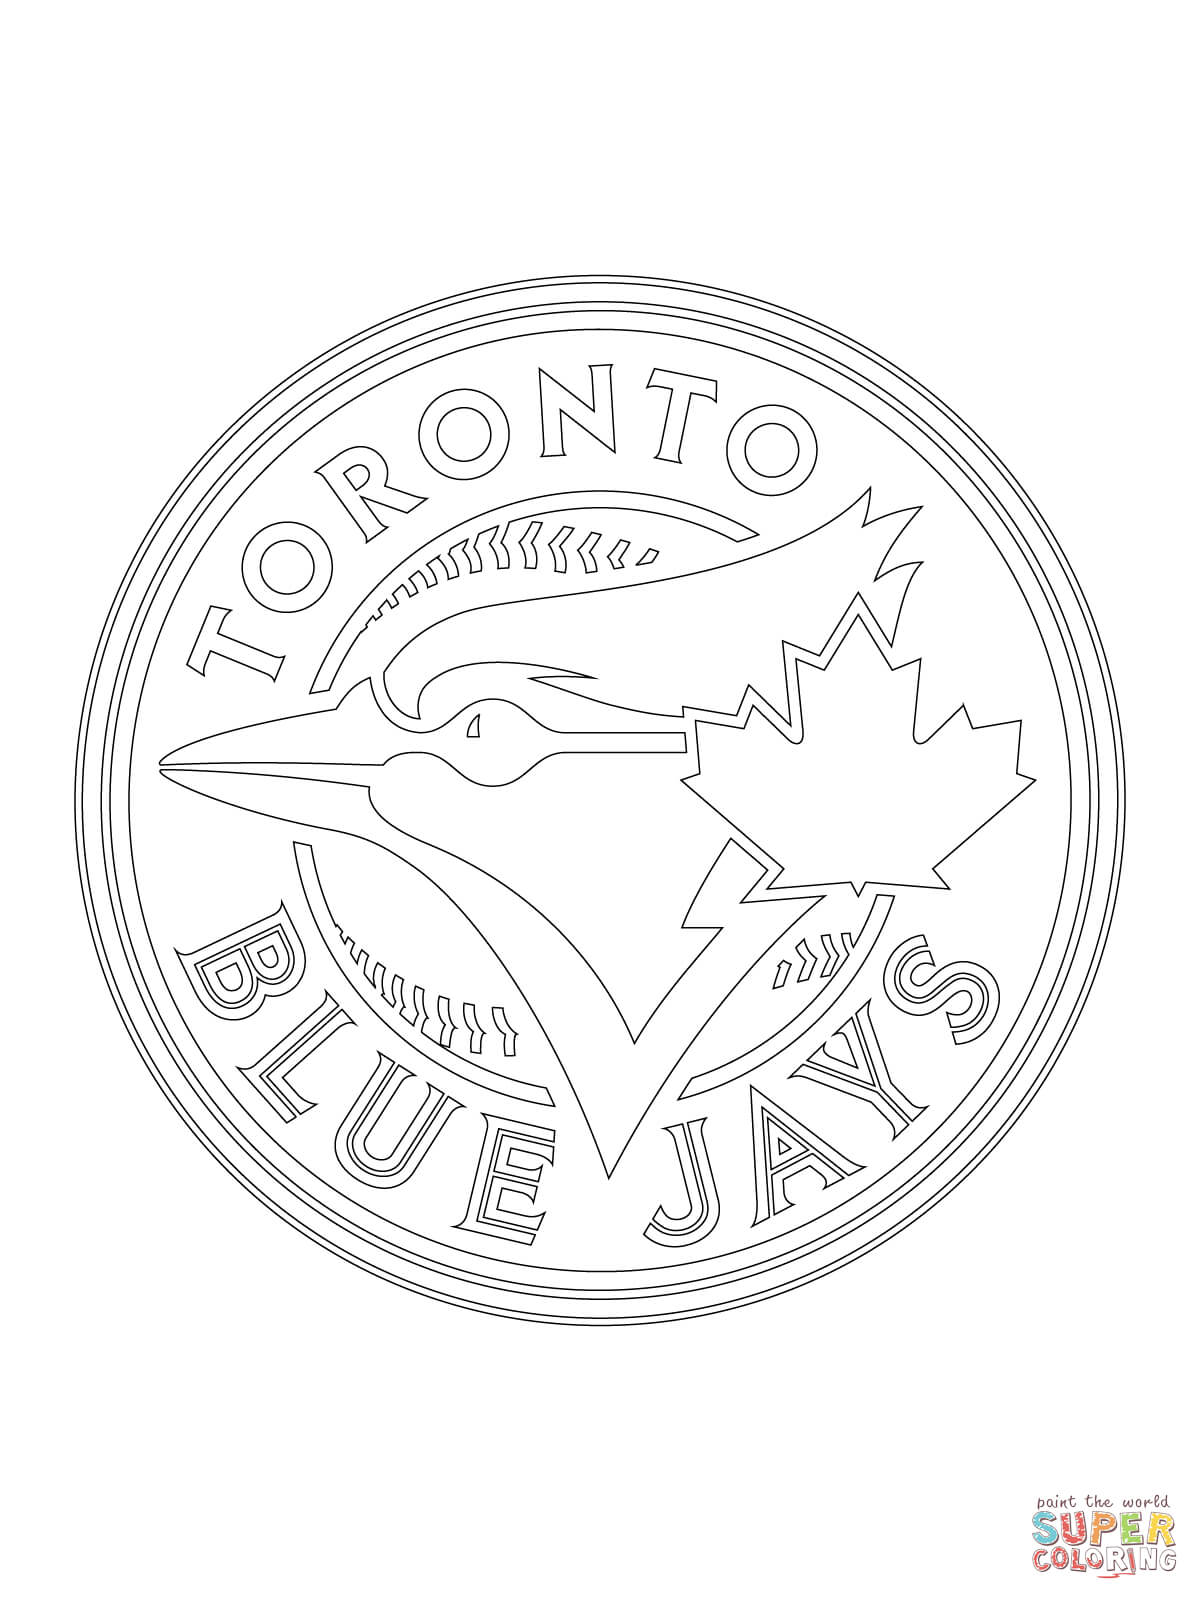 The Best Free Toronto Coloring Page Images Download From 98 Free